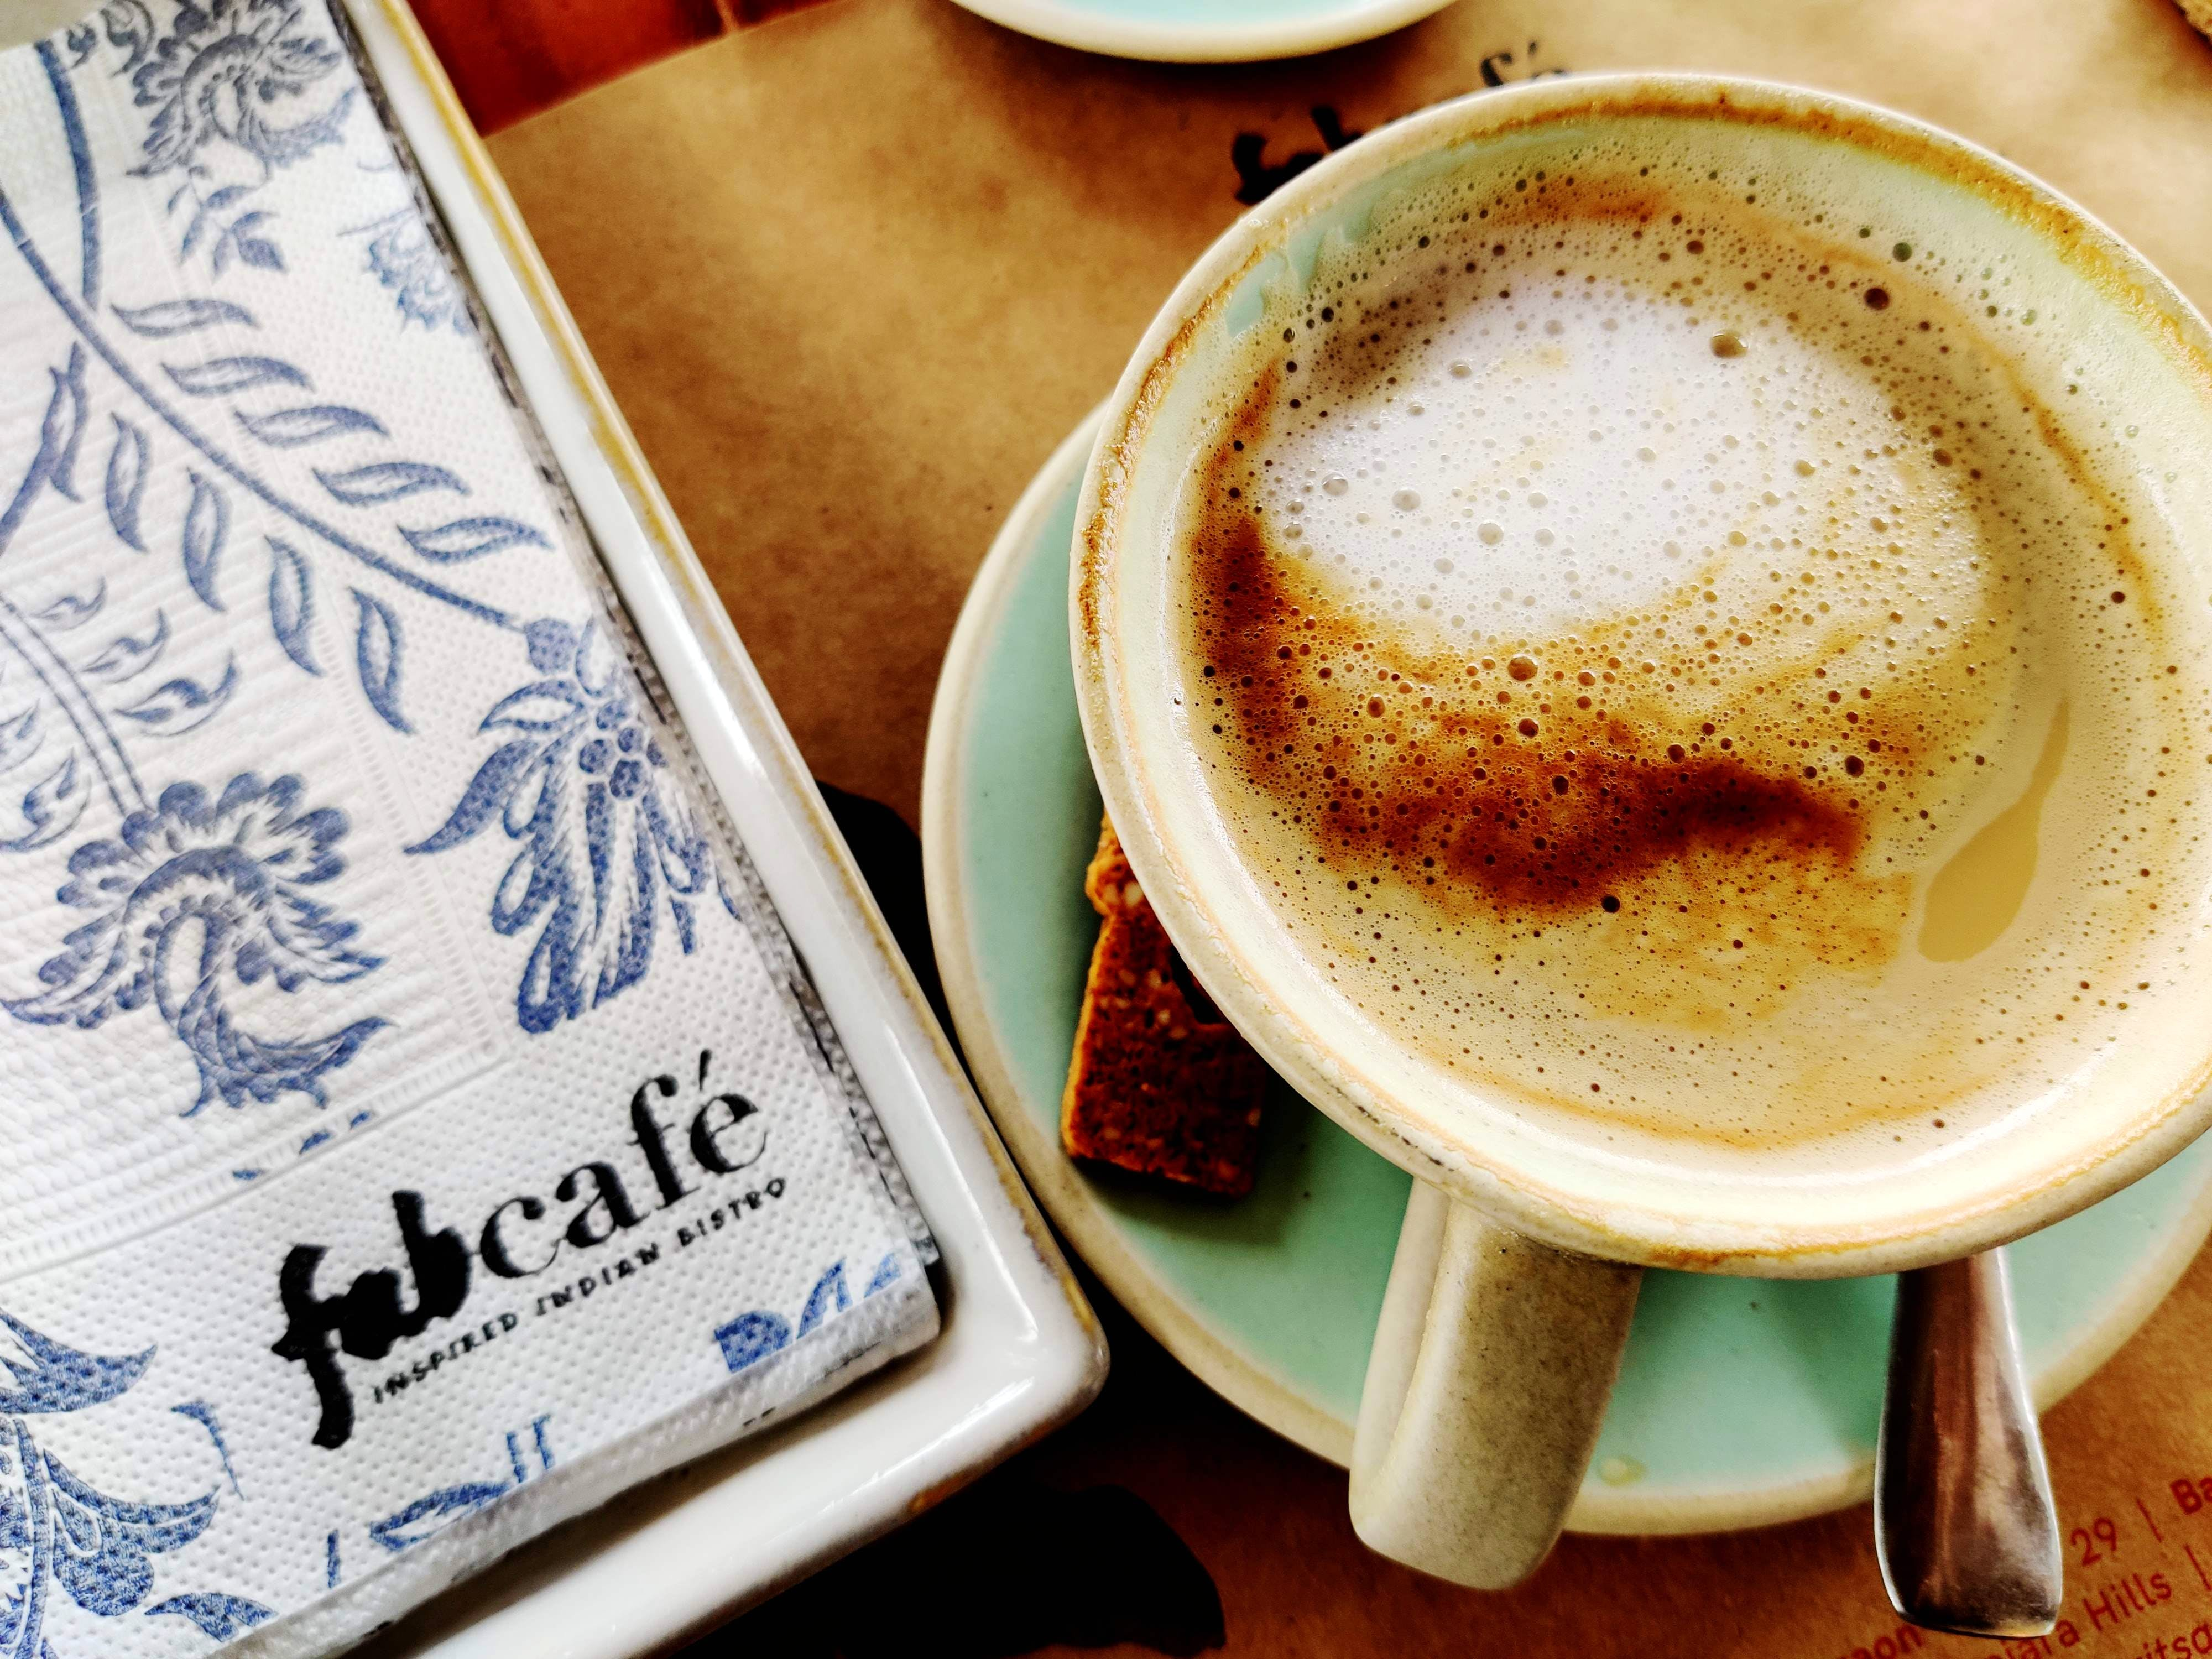 Health Conscious? This Organic Cafe Should Definitely Be On Your List!